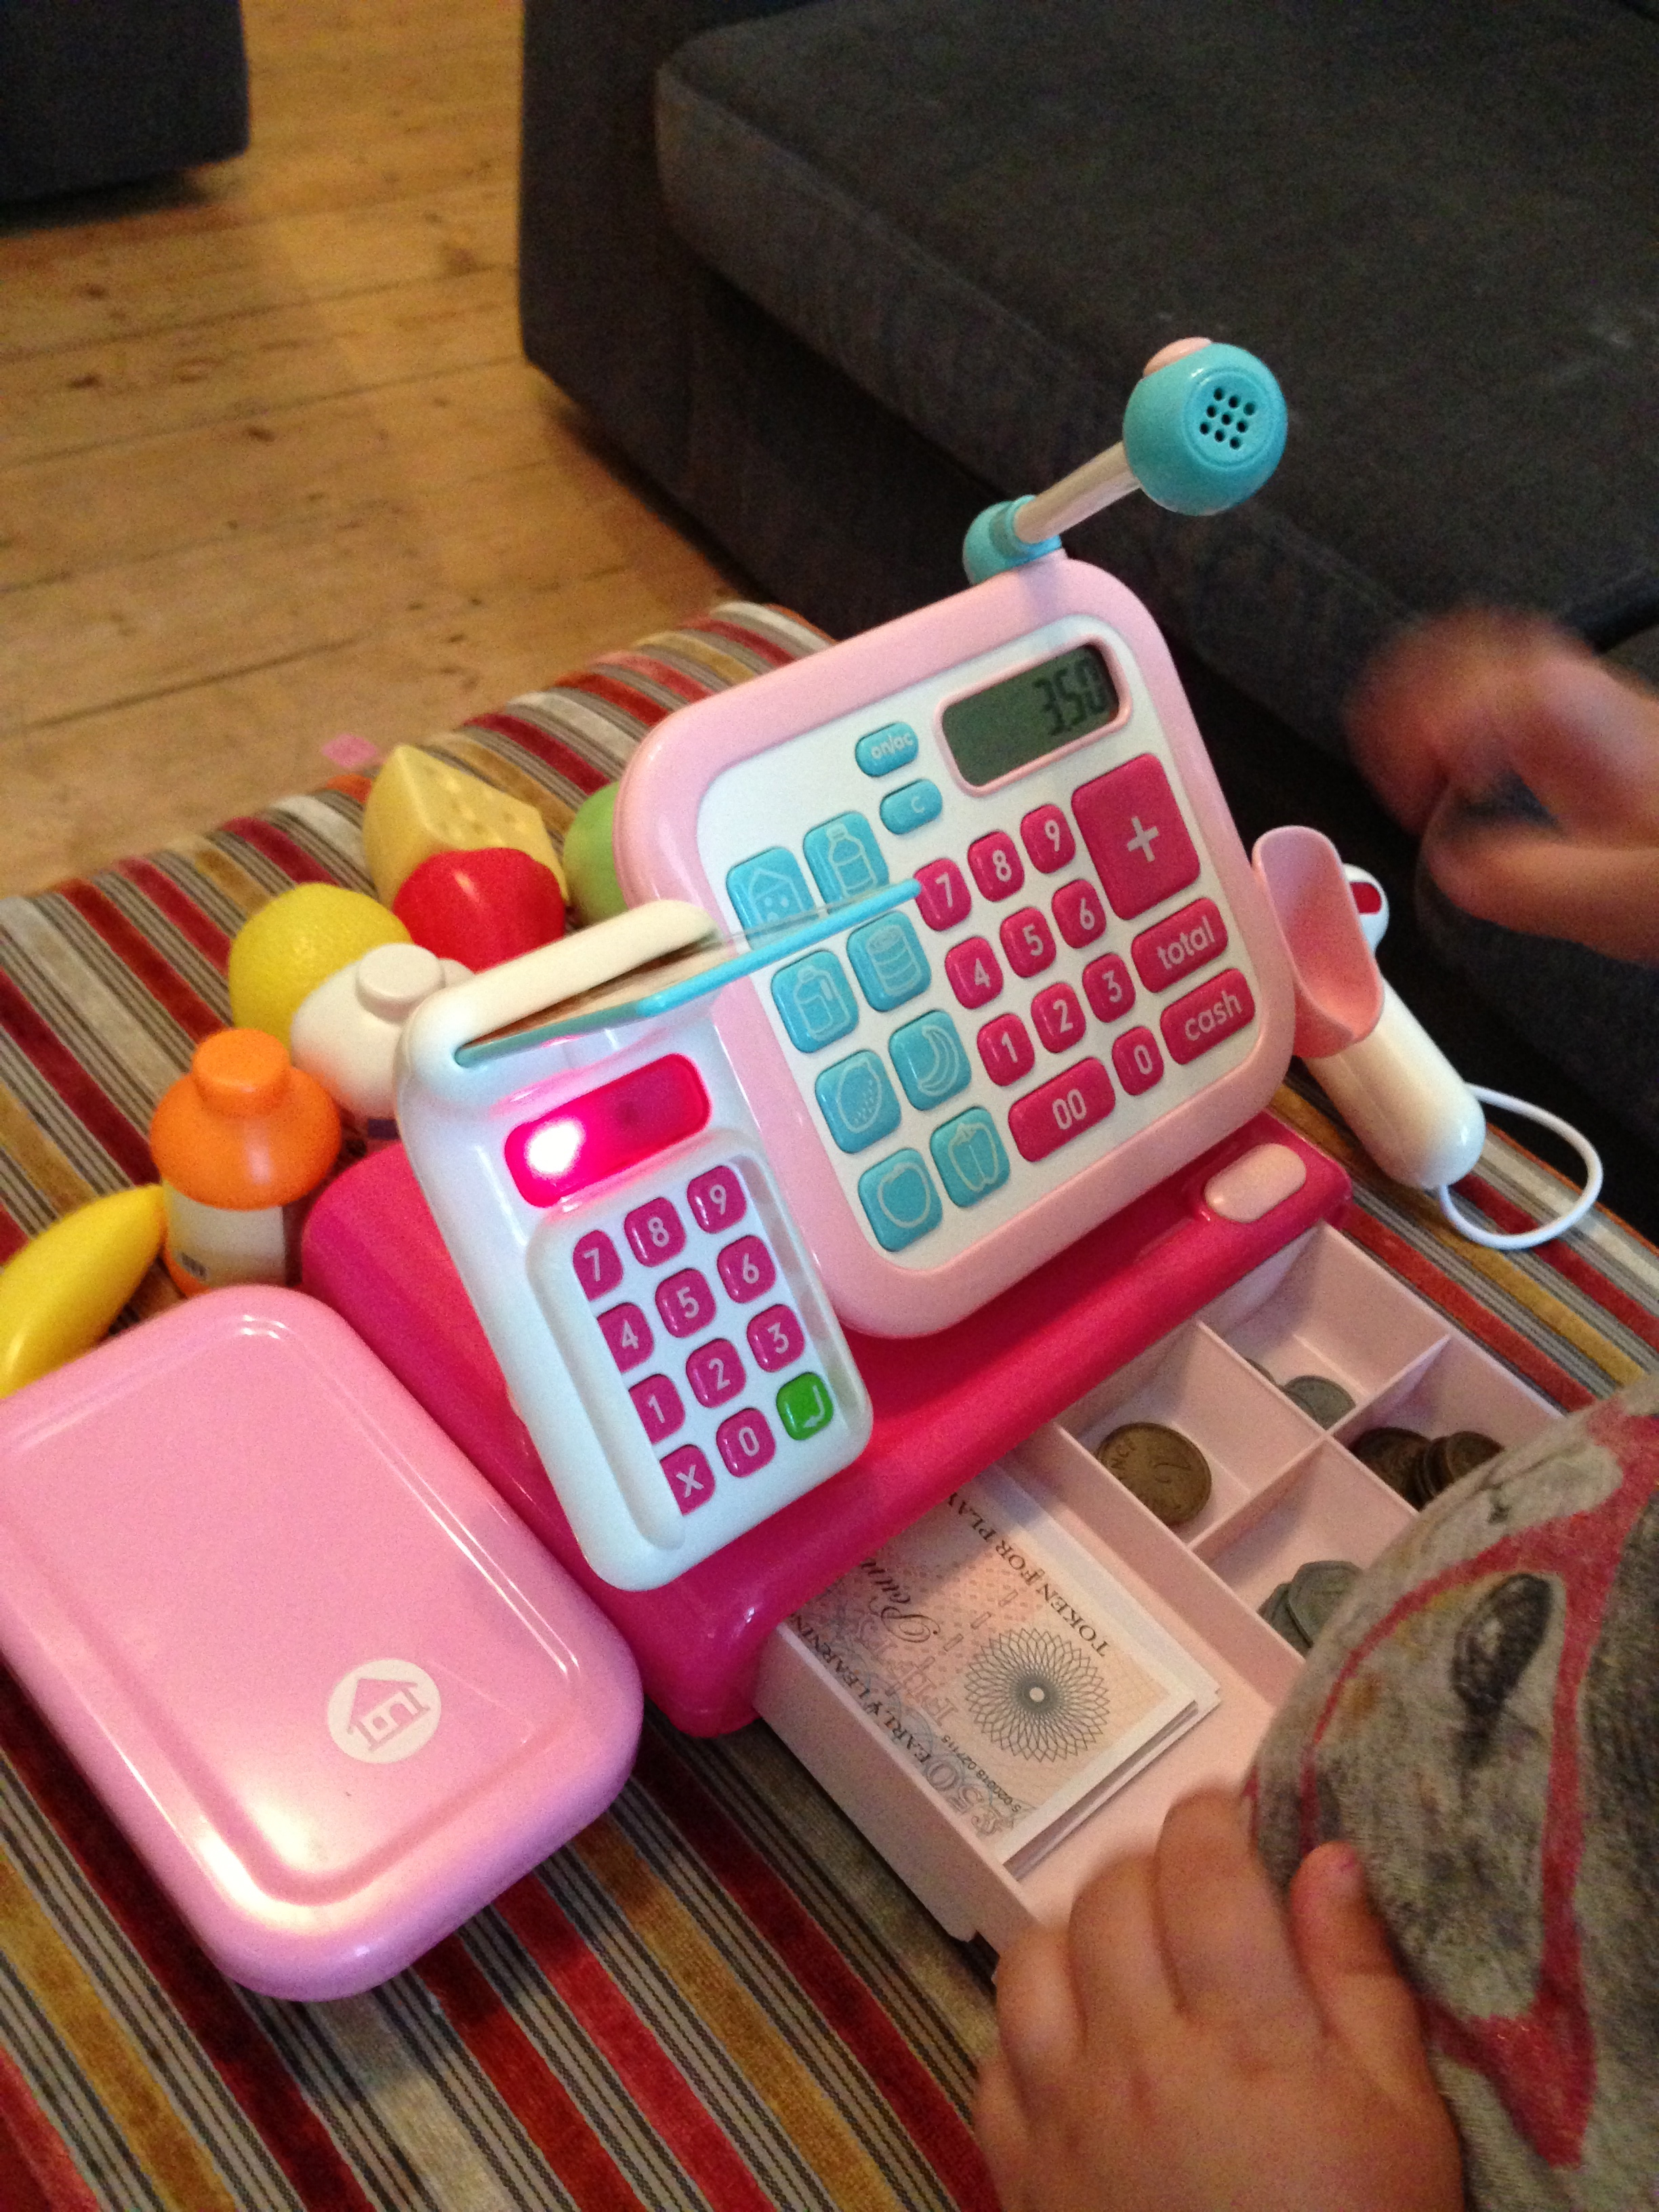 Fullsize Of Cash Register Toy